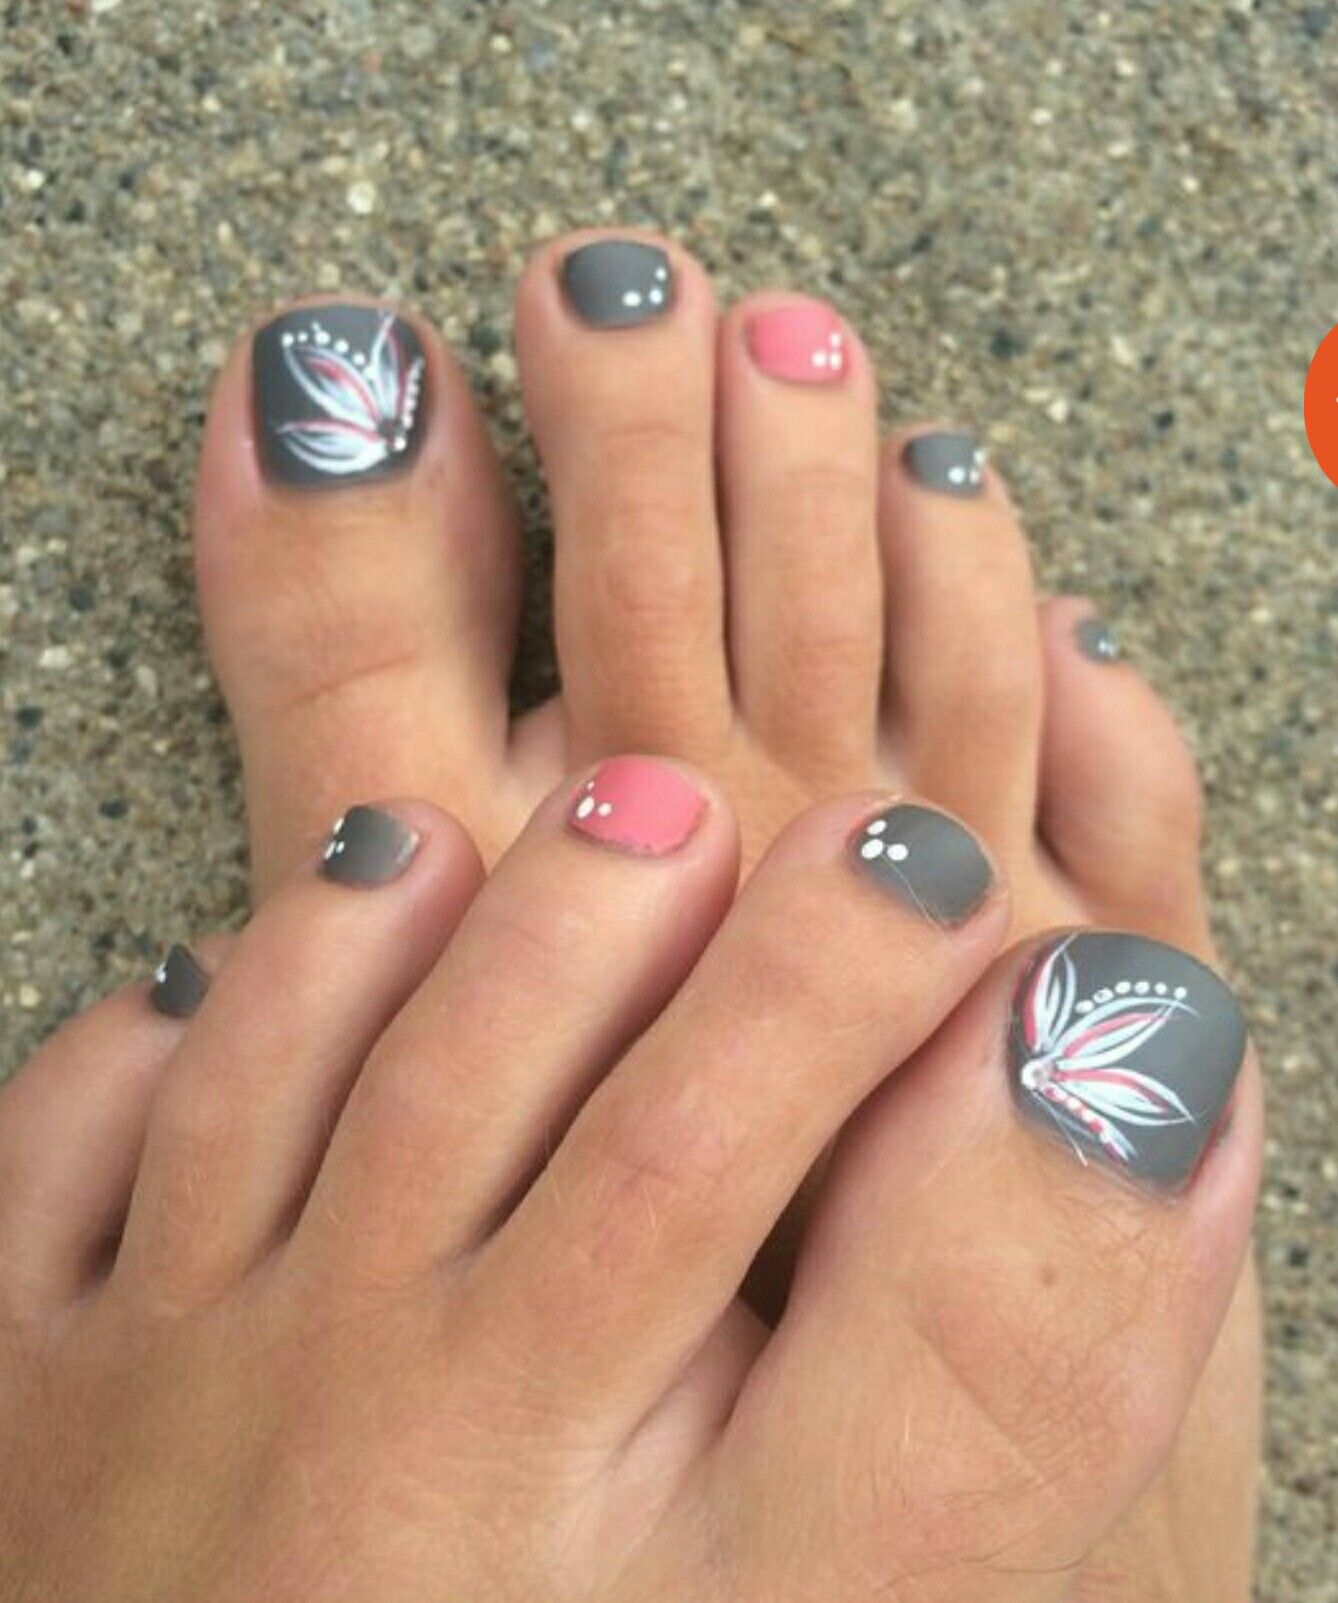 Pin By Brenda Braman Canter On Brendas Board With Images Pink Toe Nails Summer Toe Nails Cute Toe Nails